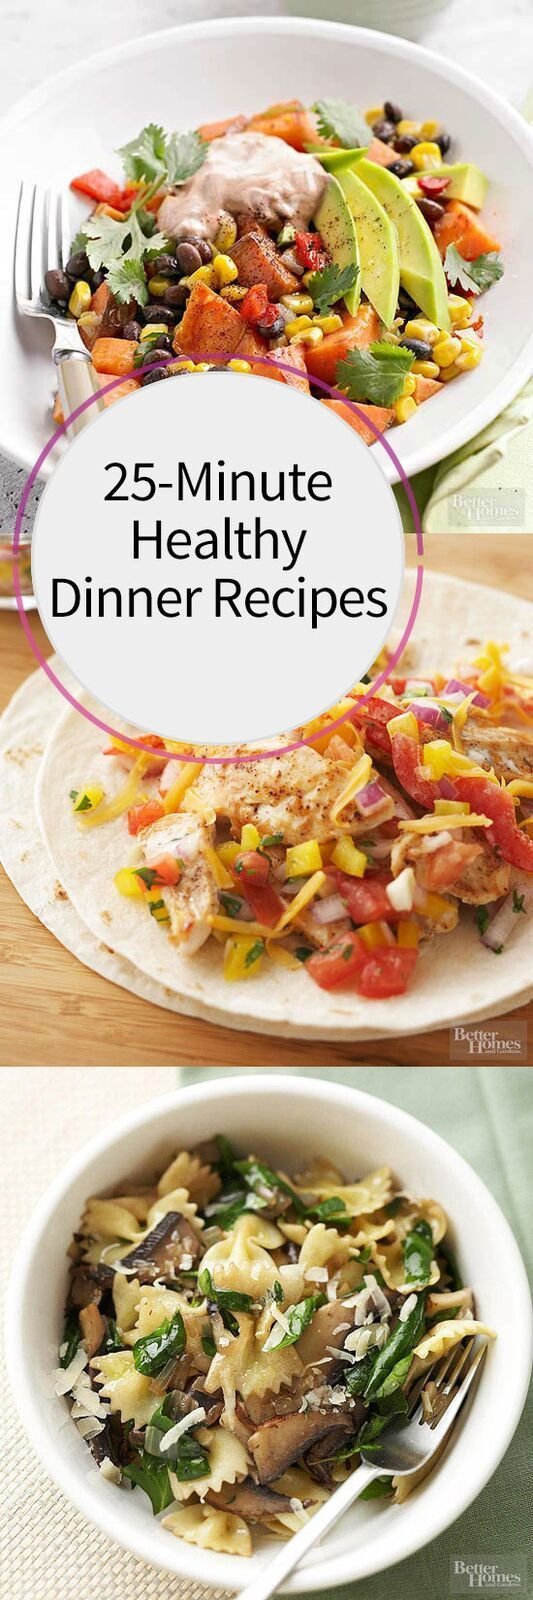 Fast And Healthy Dinner Recipes For Every Single Day Of The Month Healthy Dinner Recipes Healthy Dinner Heart Healthy Dinners